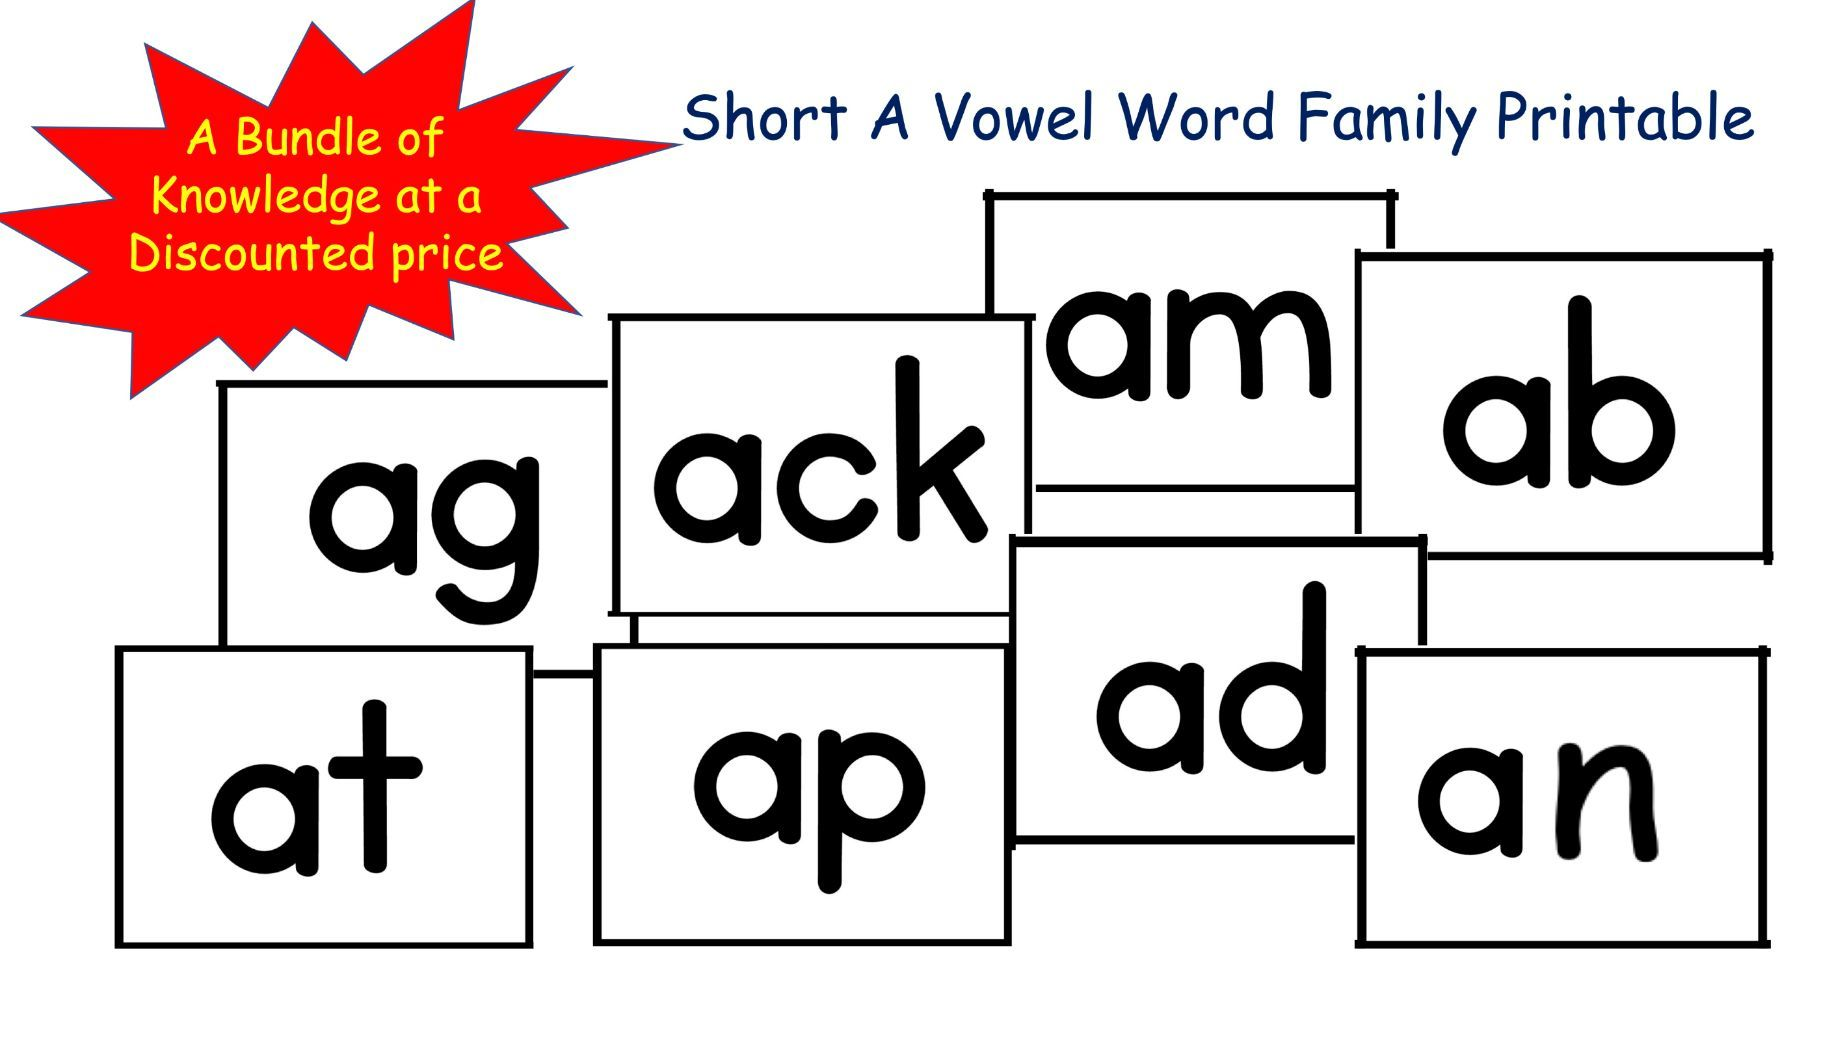 Phonics Short A Vowel Family Words (-ab, -ad, -ag, -am, -an,  -ap, -at, -ack)